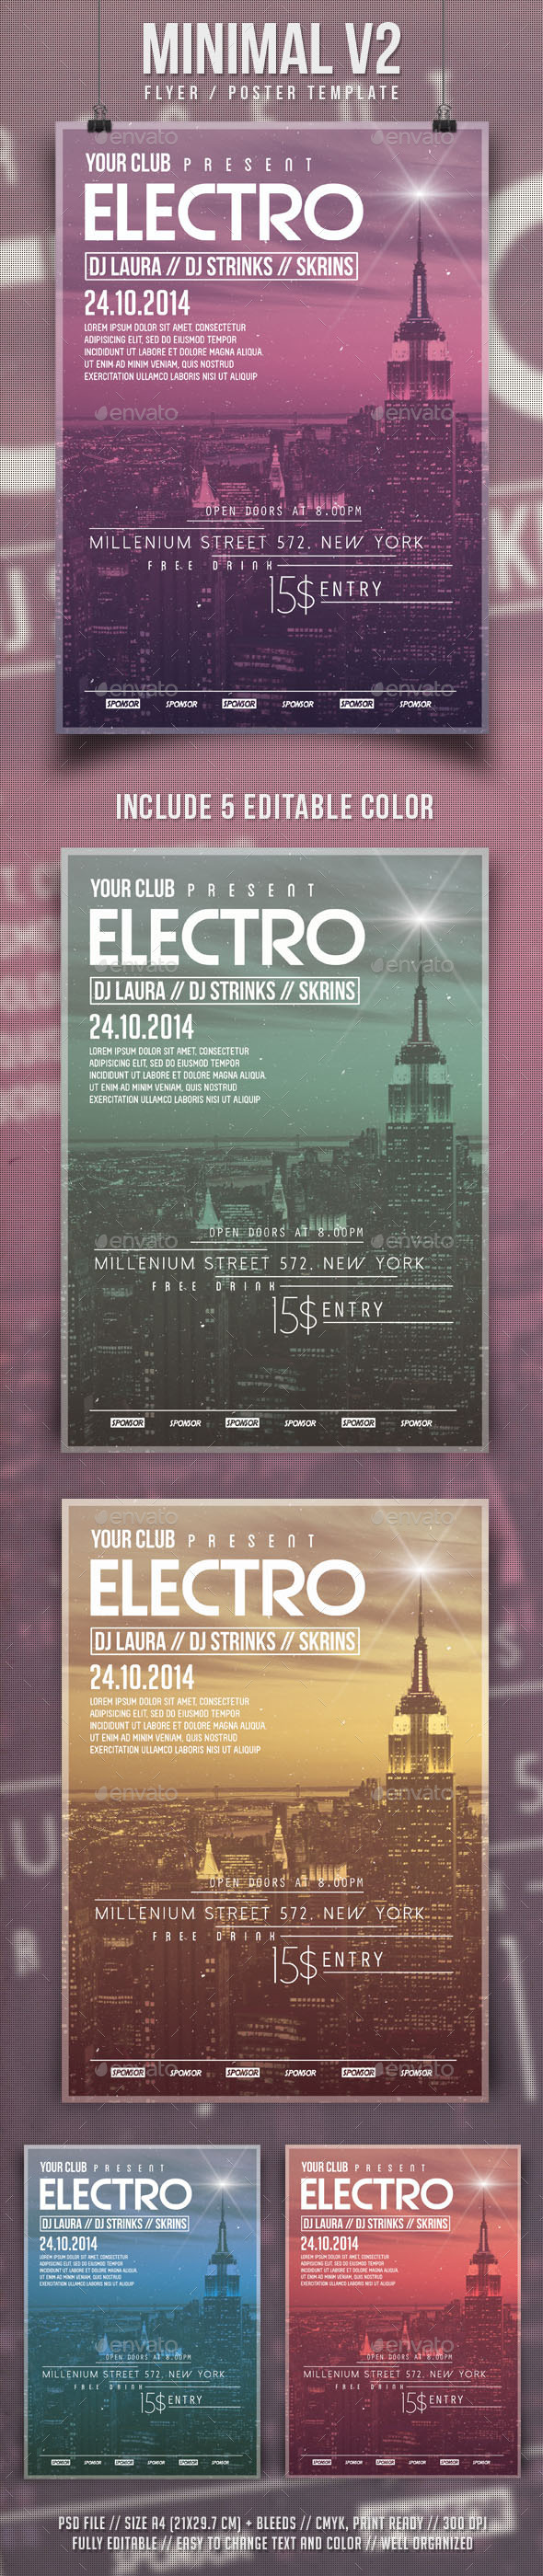 GraphicRiver Minimal V2 Flyer Template 9237361